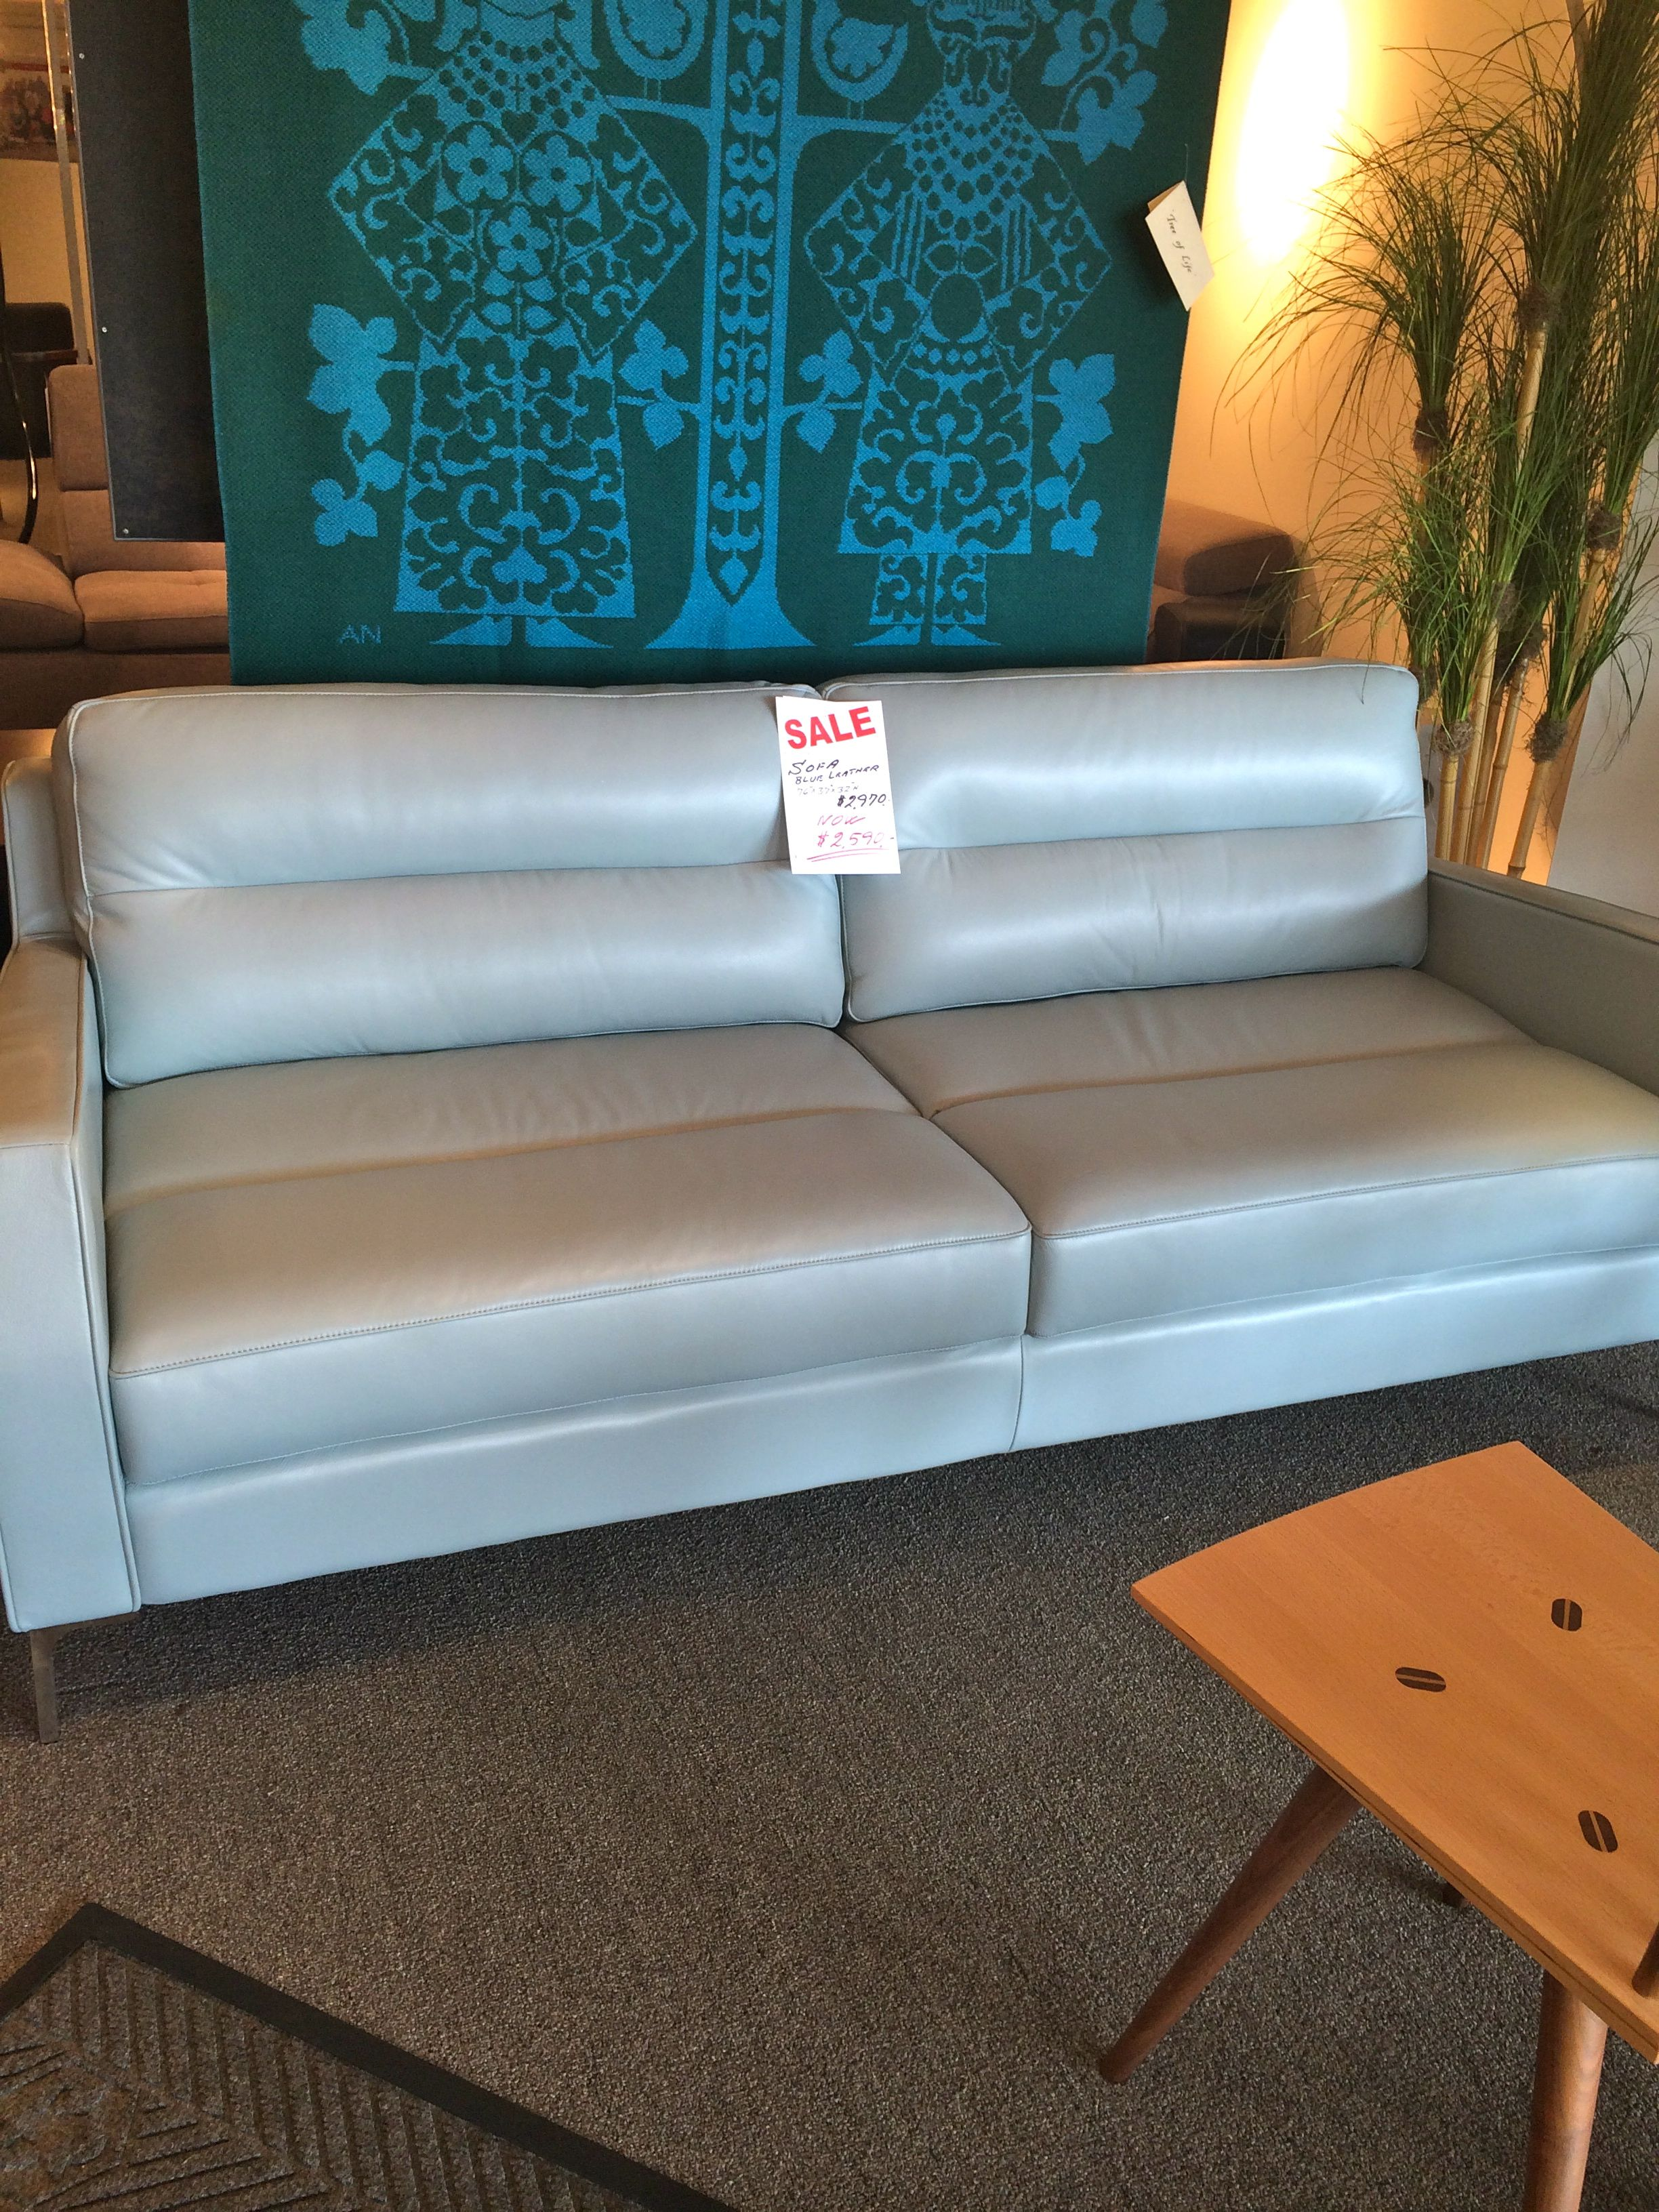 A Beautiful Scandinavian Sofa At 2 Danes In Nashville Tn Very Subtle Blue Color Comfortable Too